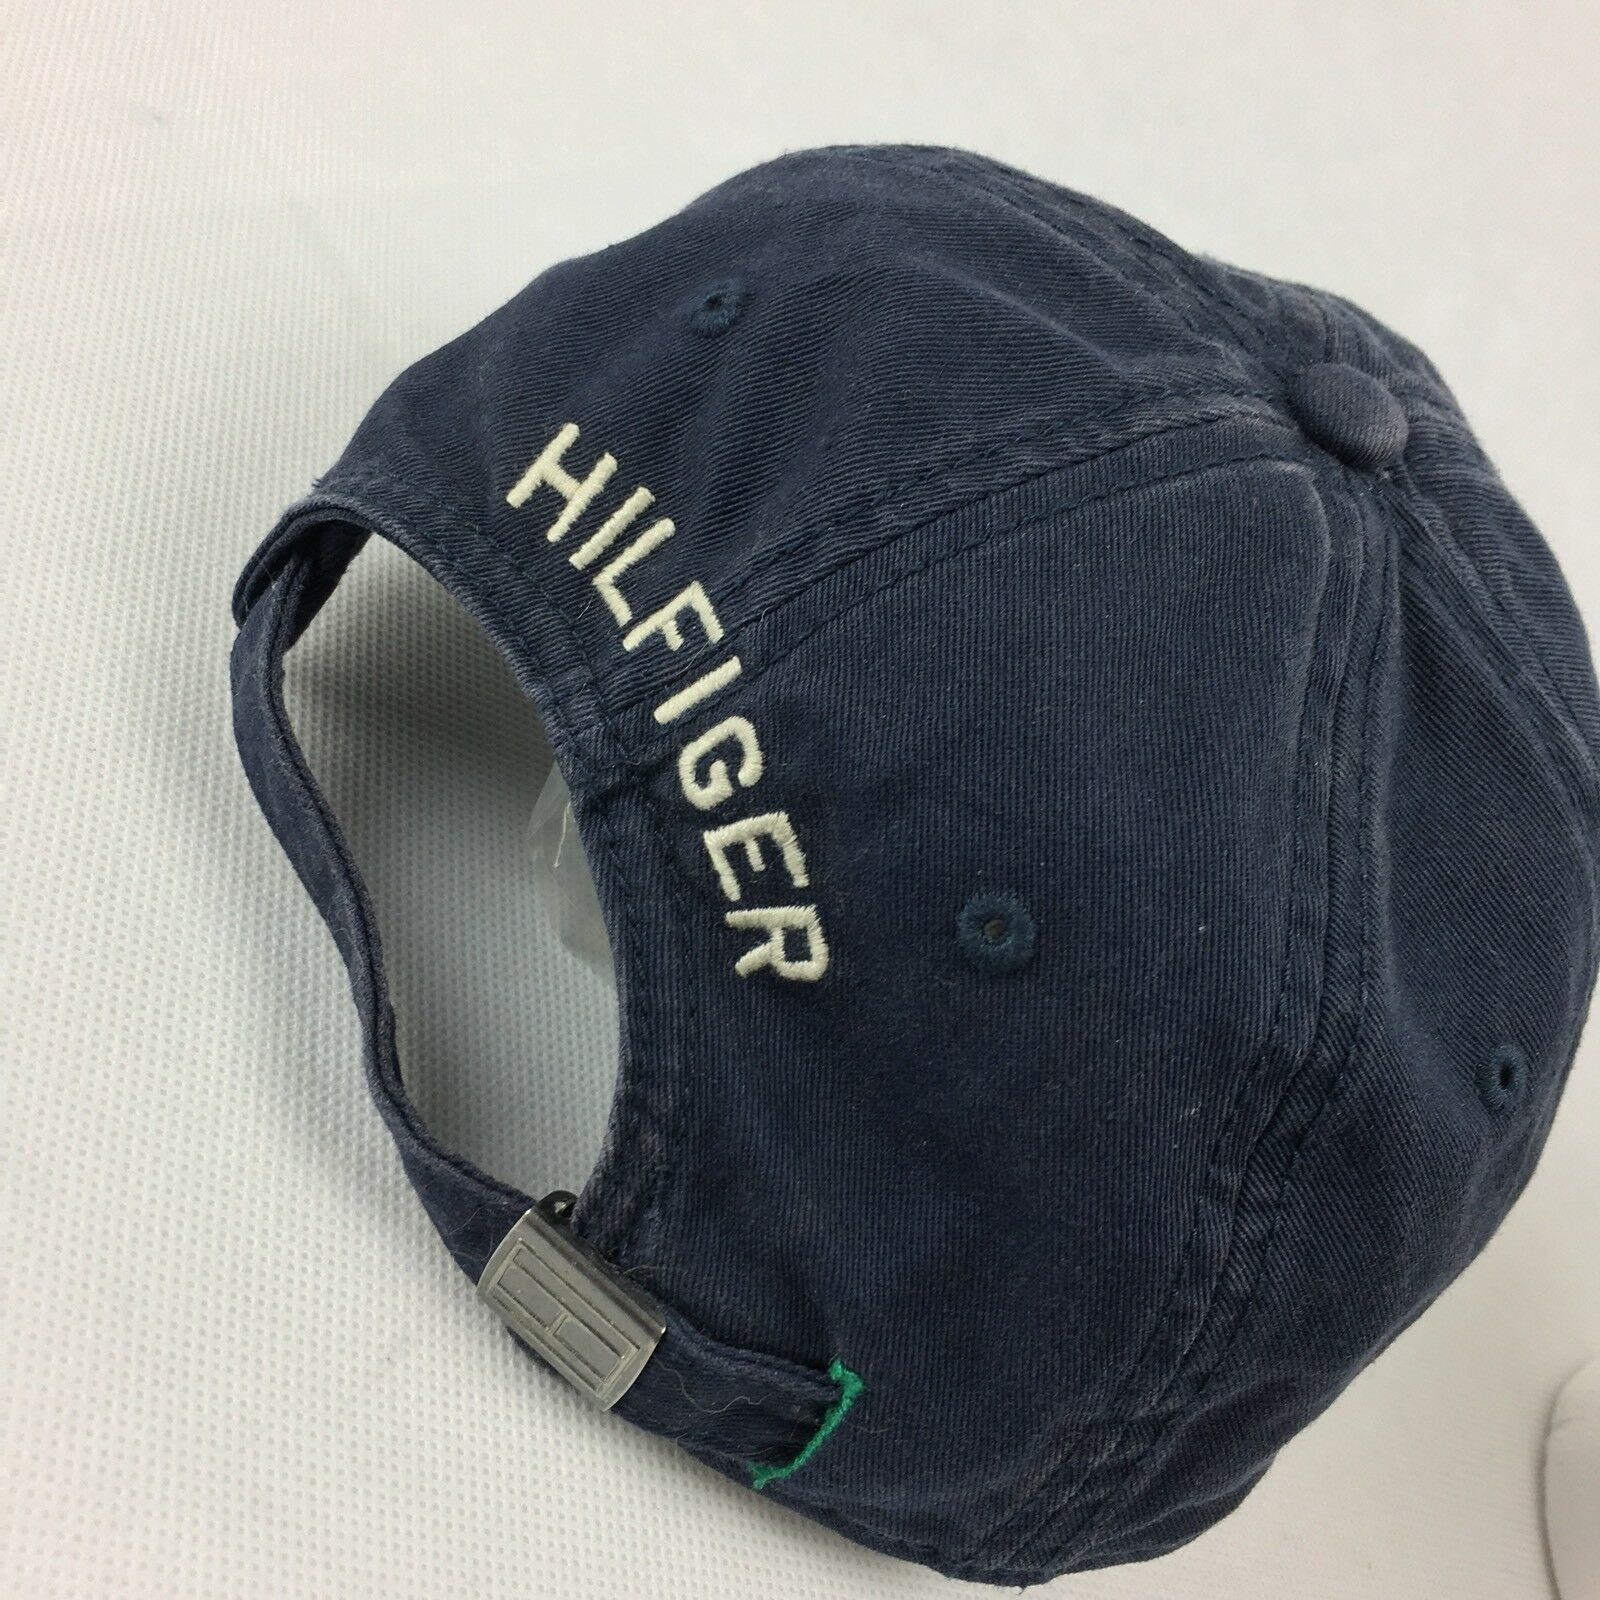 New Tommy Hilfiger Spell Out Adjustable Casual Cotton Dad Hat Cap Tan Khaki